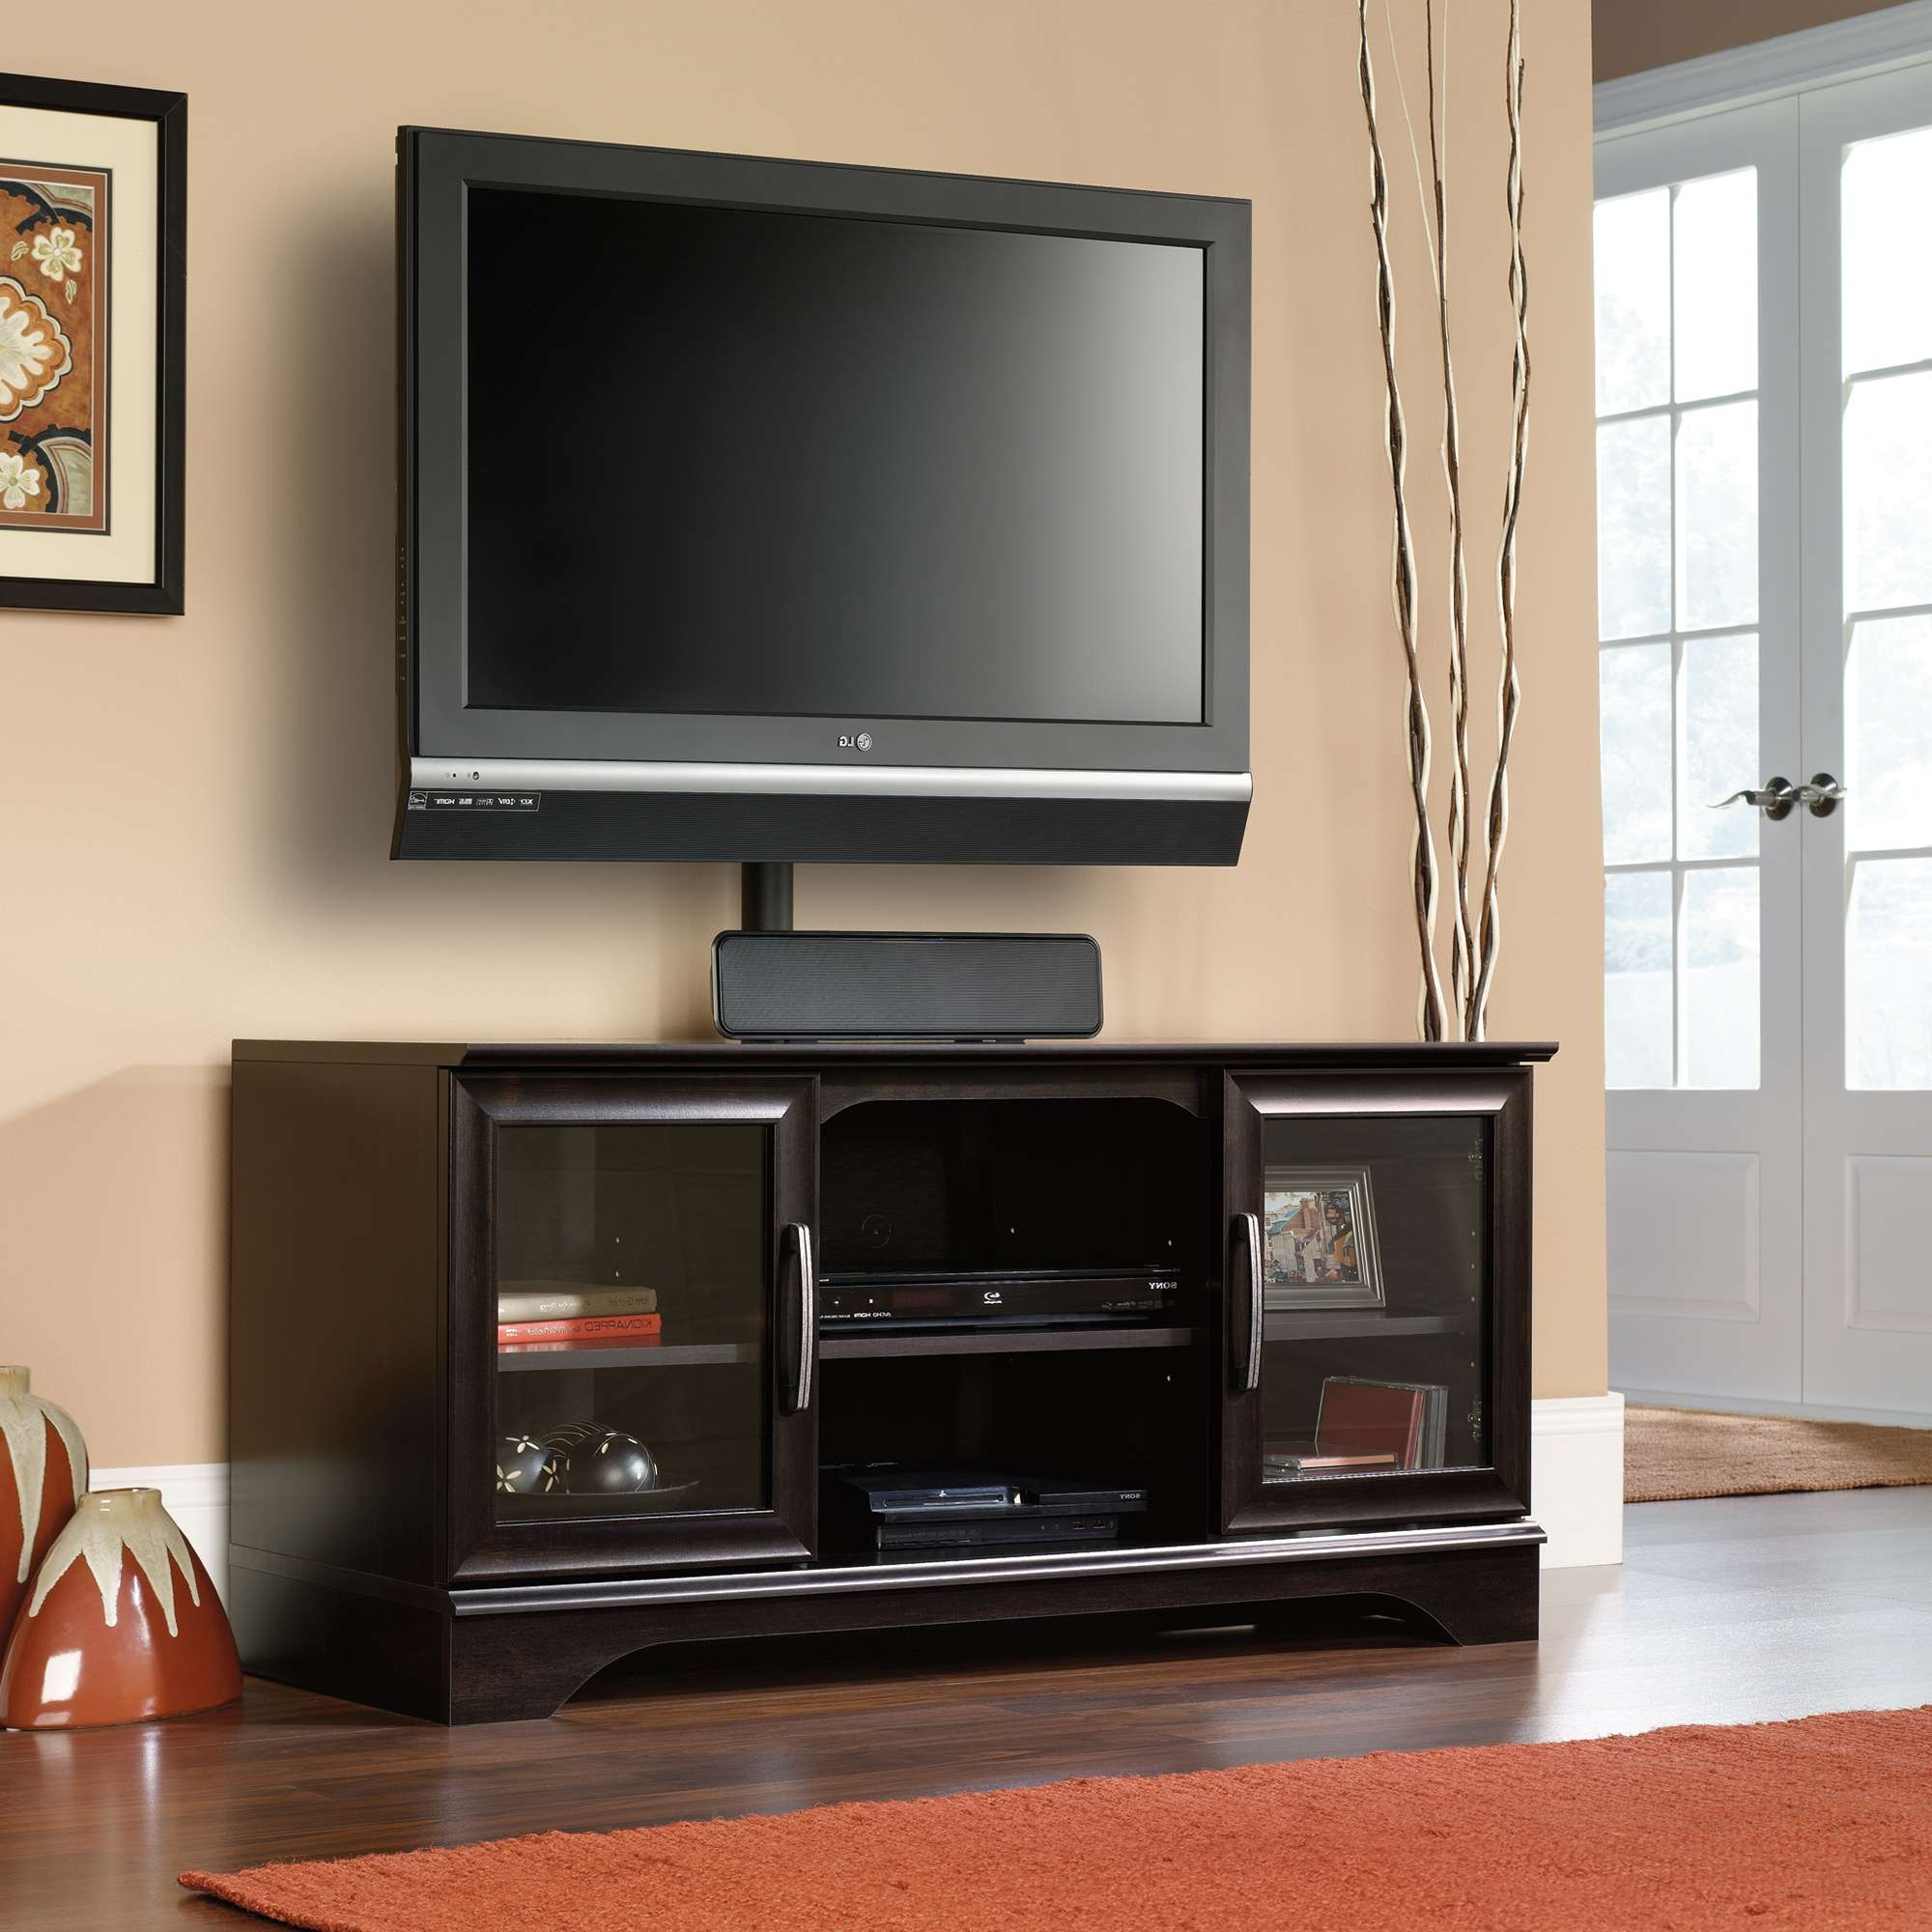 Furniture Entertainment Centers For Inch Tver Stand Stands Wall For Entertainment Center Tv Stands (View 9 of 15)